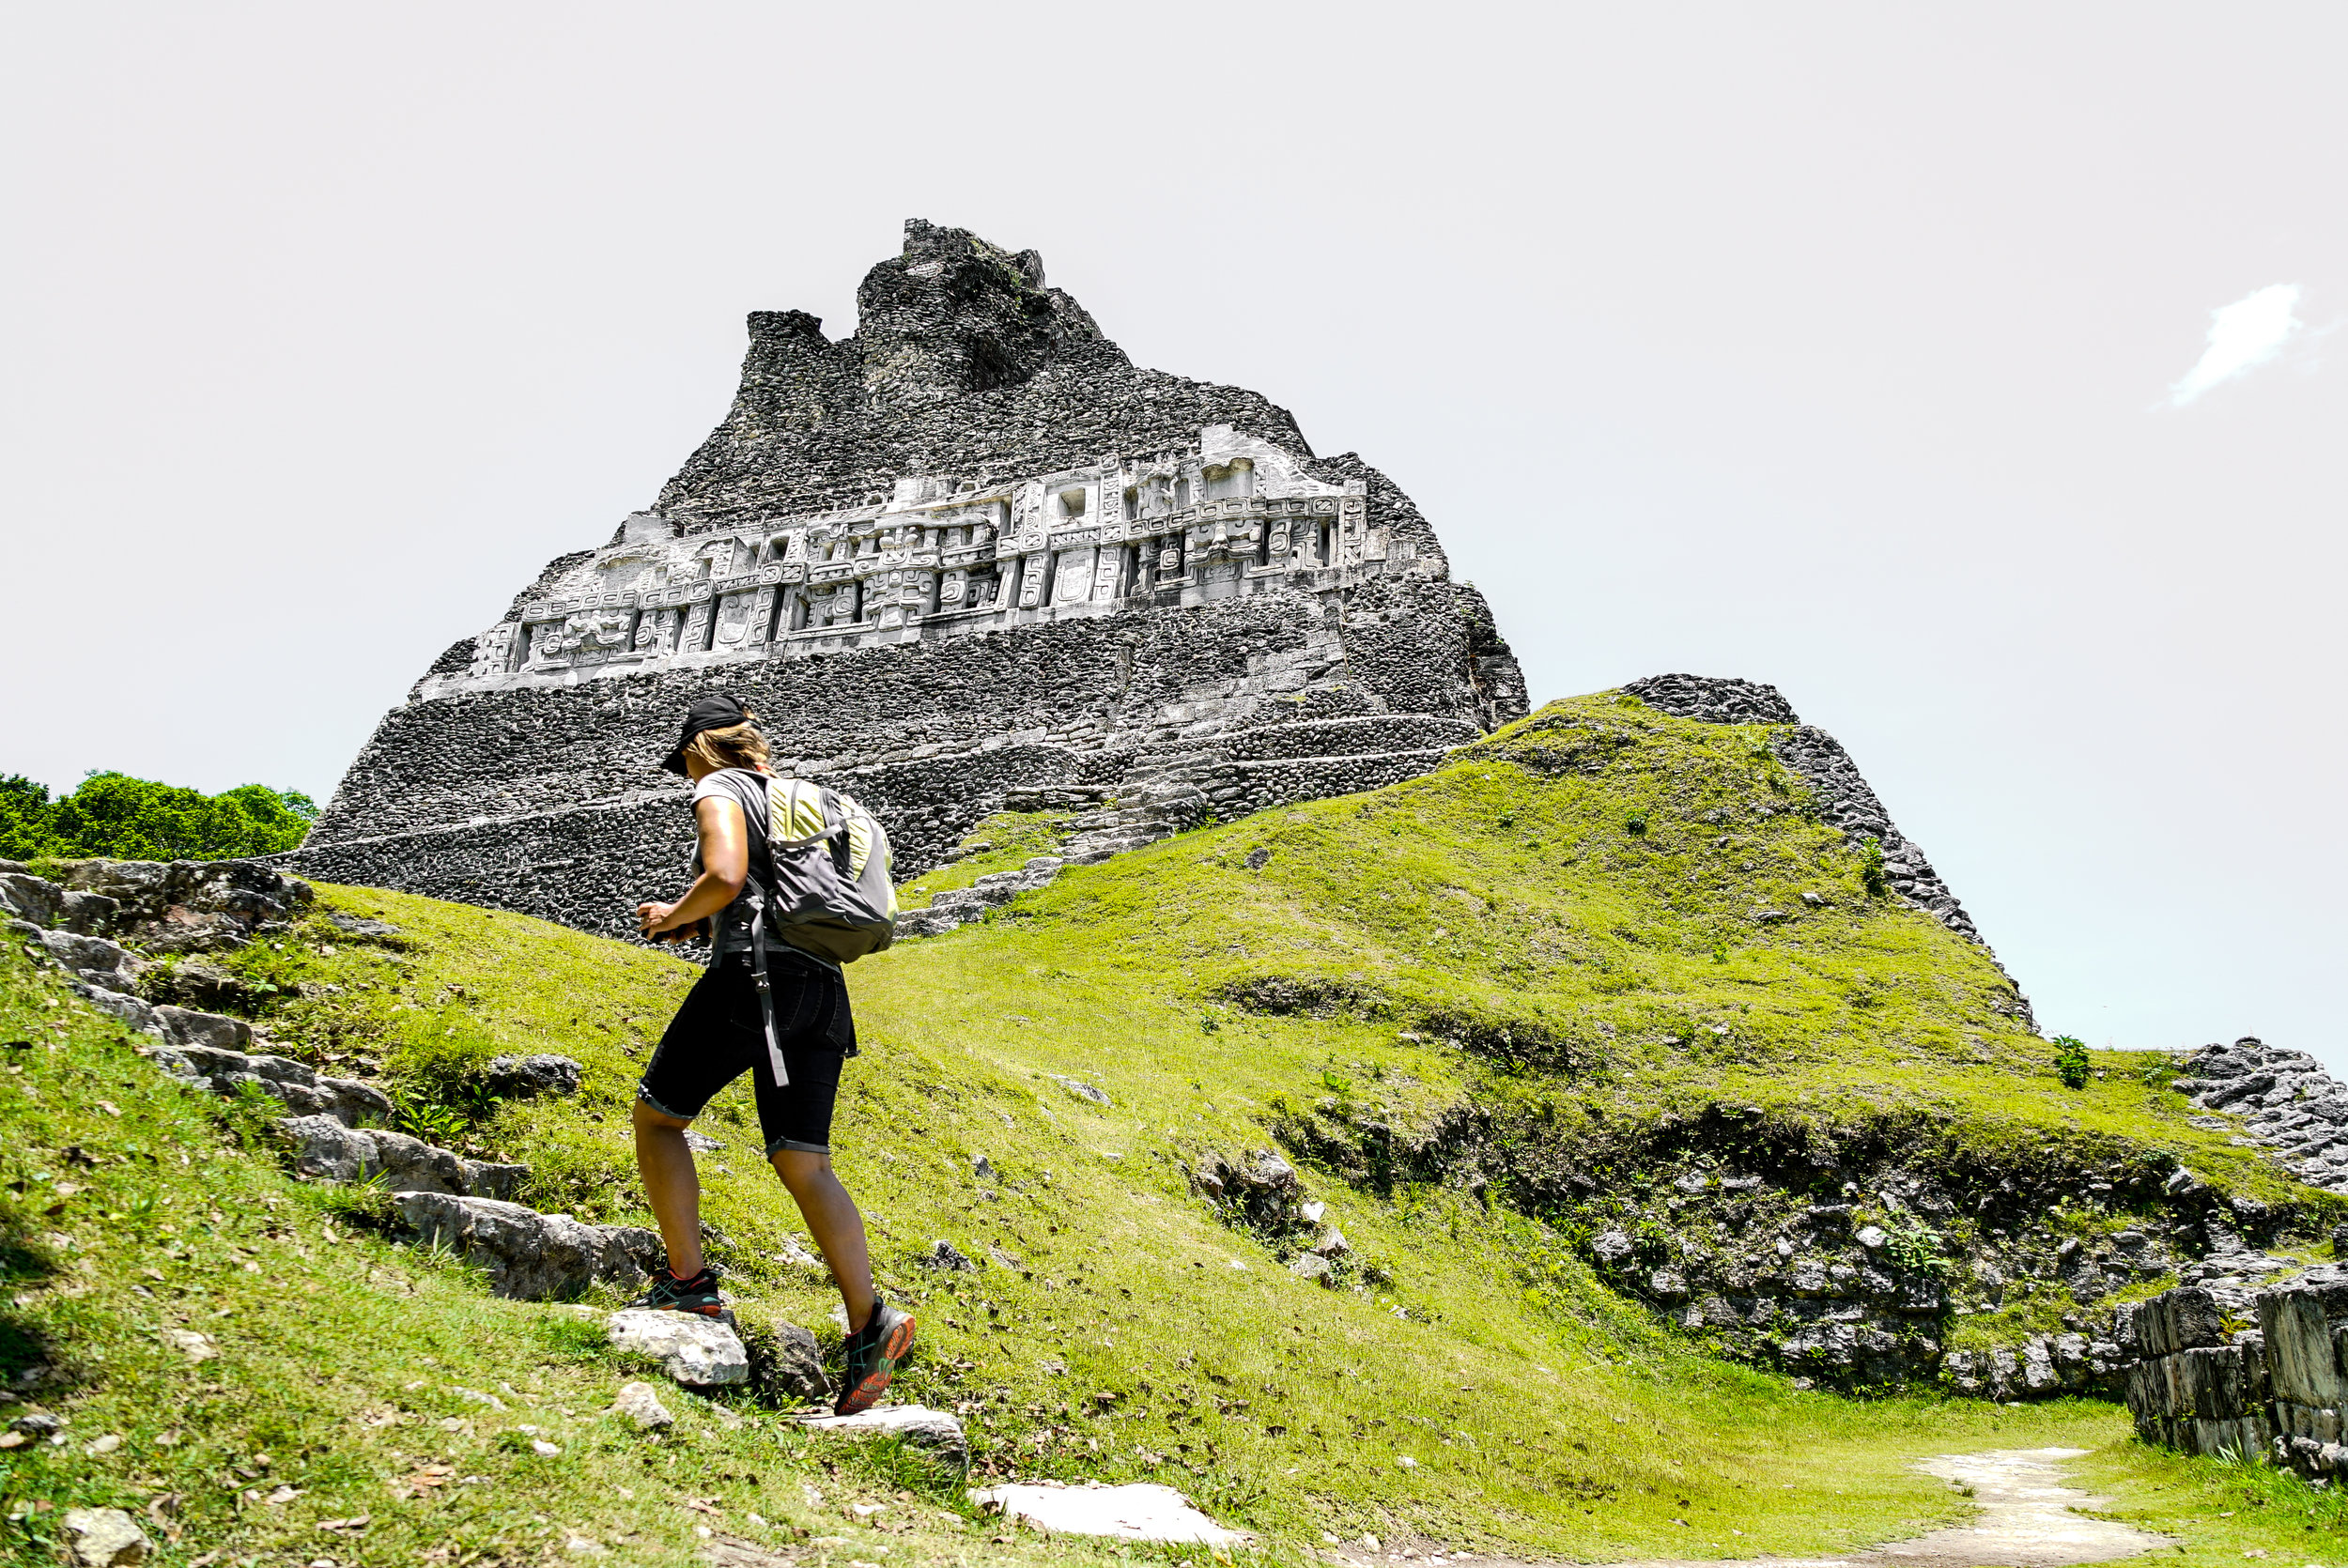 Ancient Maya Sites - From Xunantunich to the Cahal Peche, touring sites from ancient Belizean civilizations is a fun way to learn about local history. This is a full day tour and includes lunch.